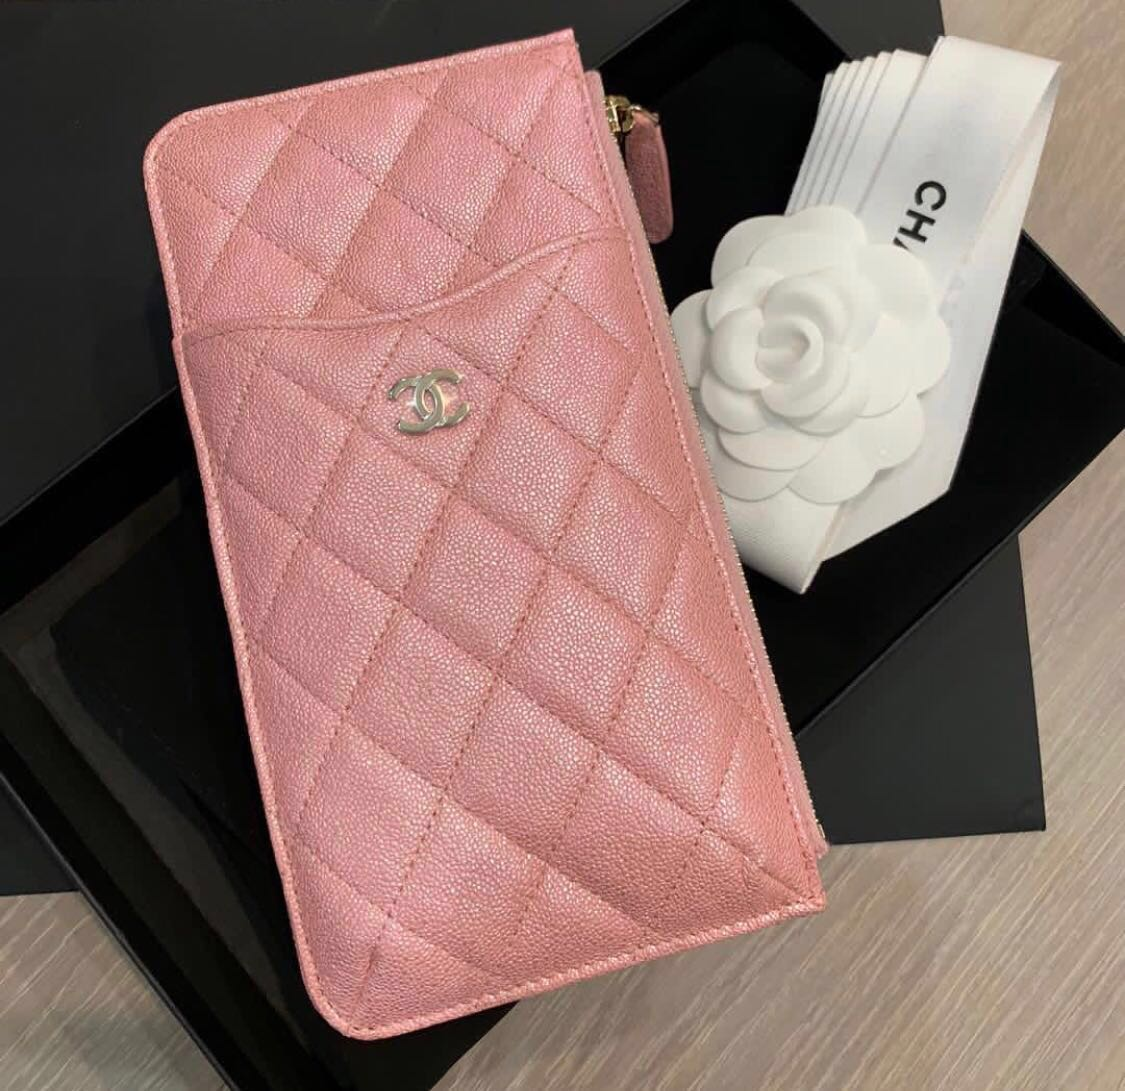 af6afab5e26e 🔥🦄NEW! CHANEL 19S Pink Iridescent Caviar Phone & Card Wallet ...